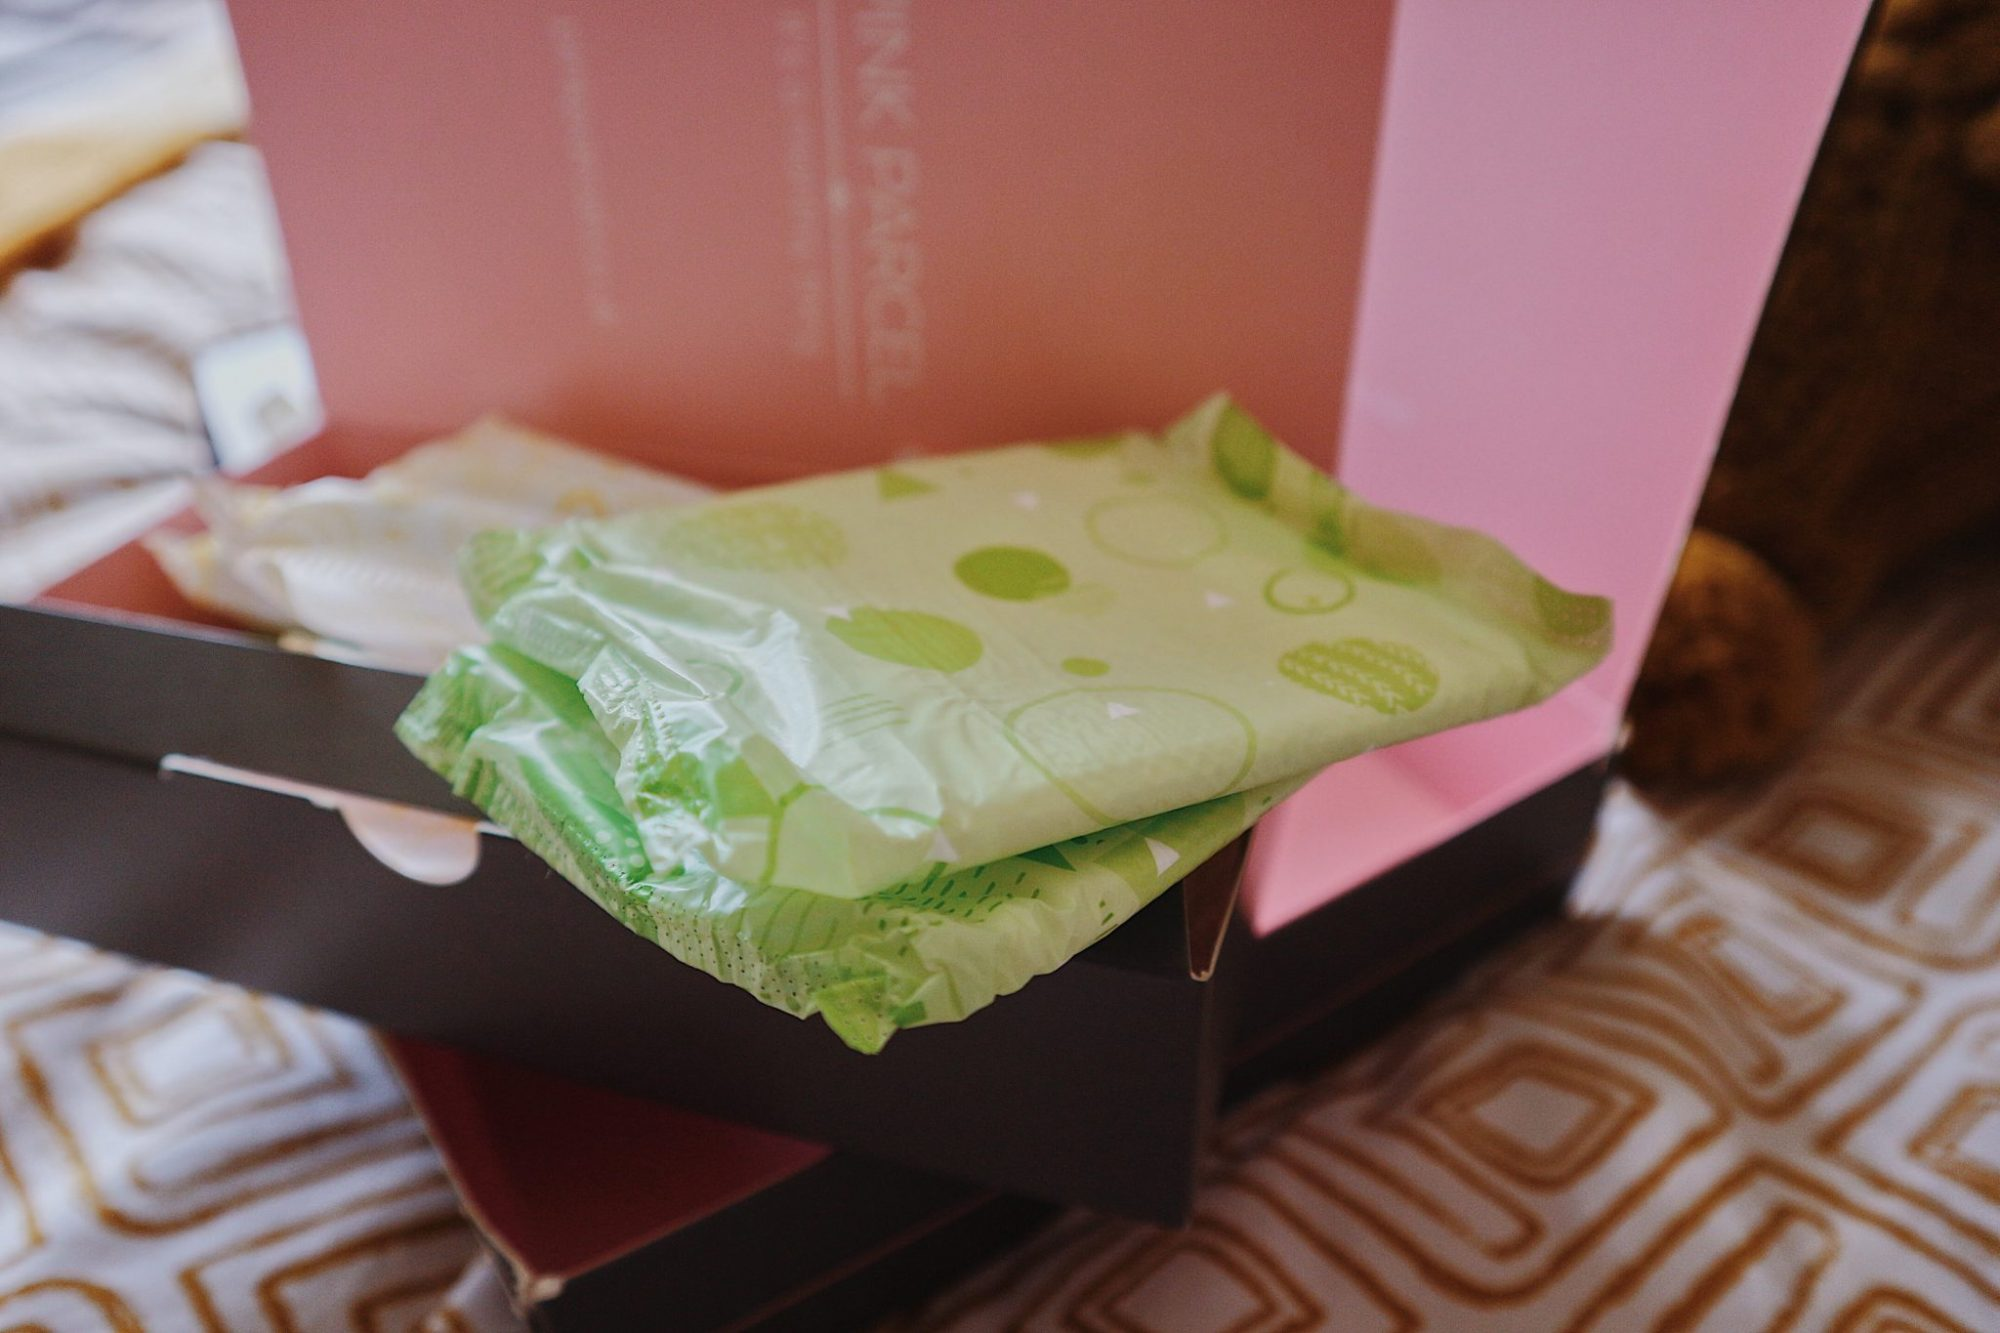 Pink Parcel Period Subscription BoxDaytime Pads